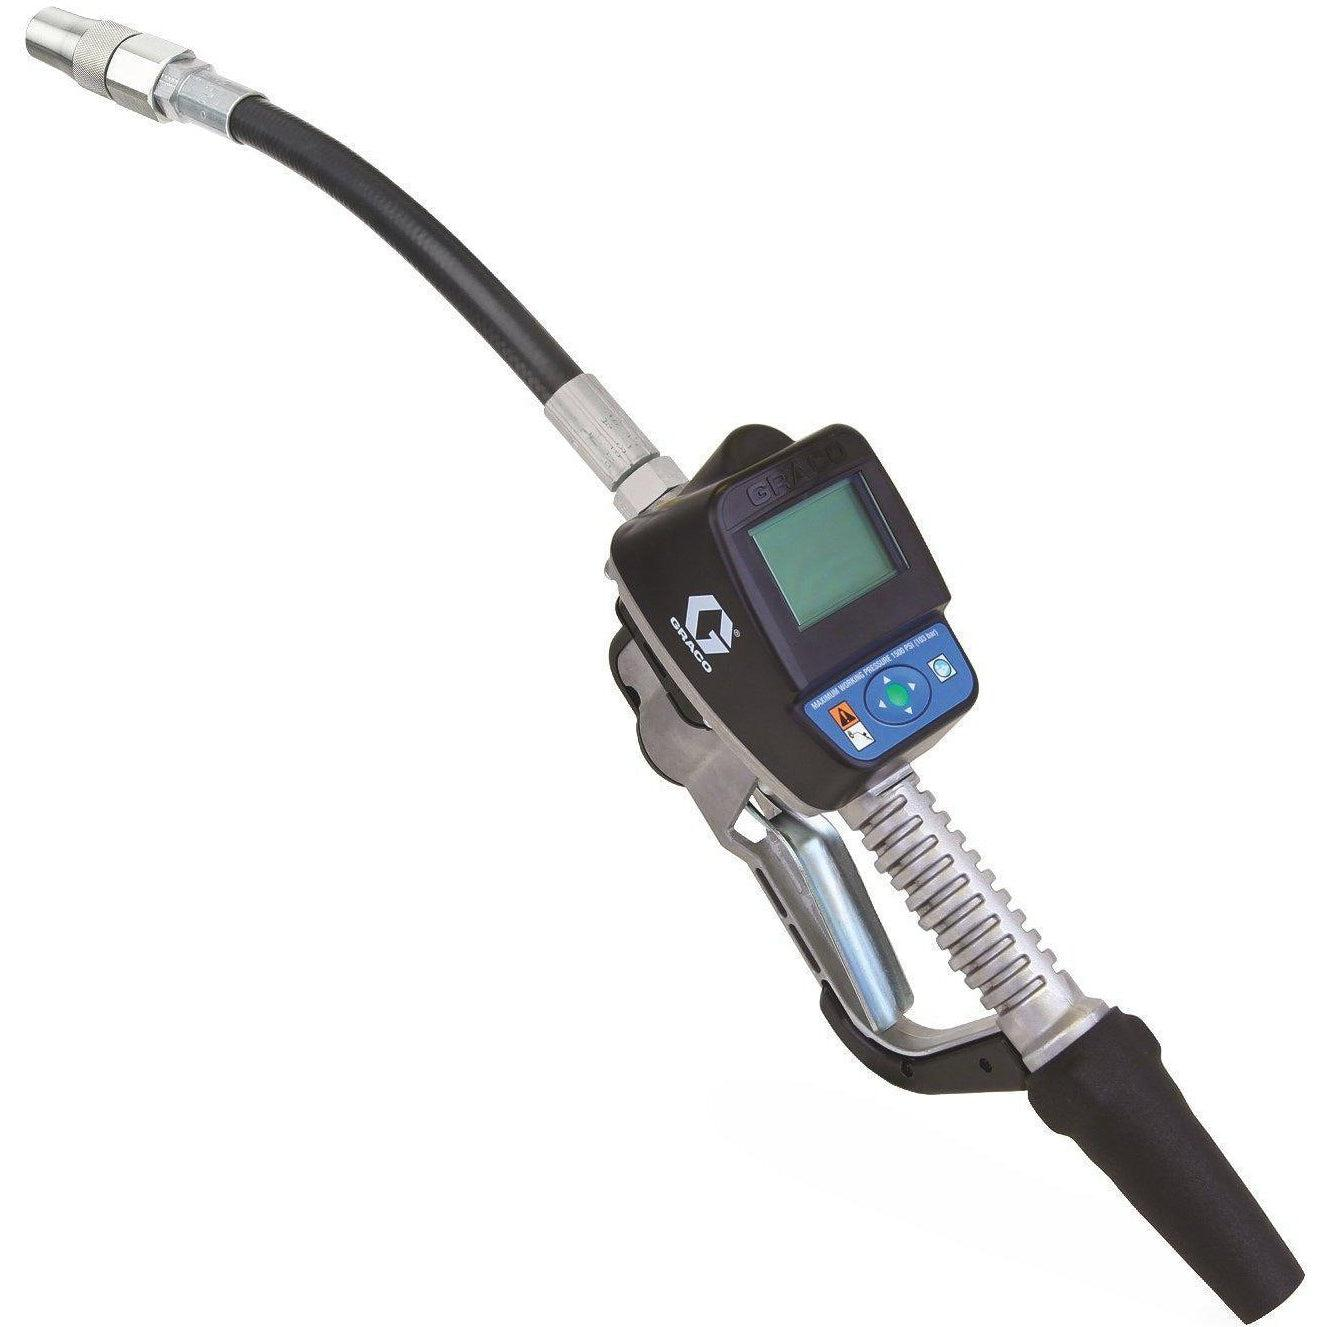 "24H128-Graco 24H128 Sdm15 Series Electronic Manual Oil/Anti-Freeze Meter - Flexible Extension - 3/4"" Inlet - Bspp-Order-Online-Fireball-Equipment"